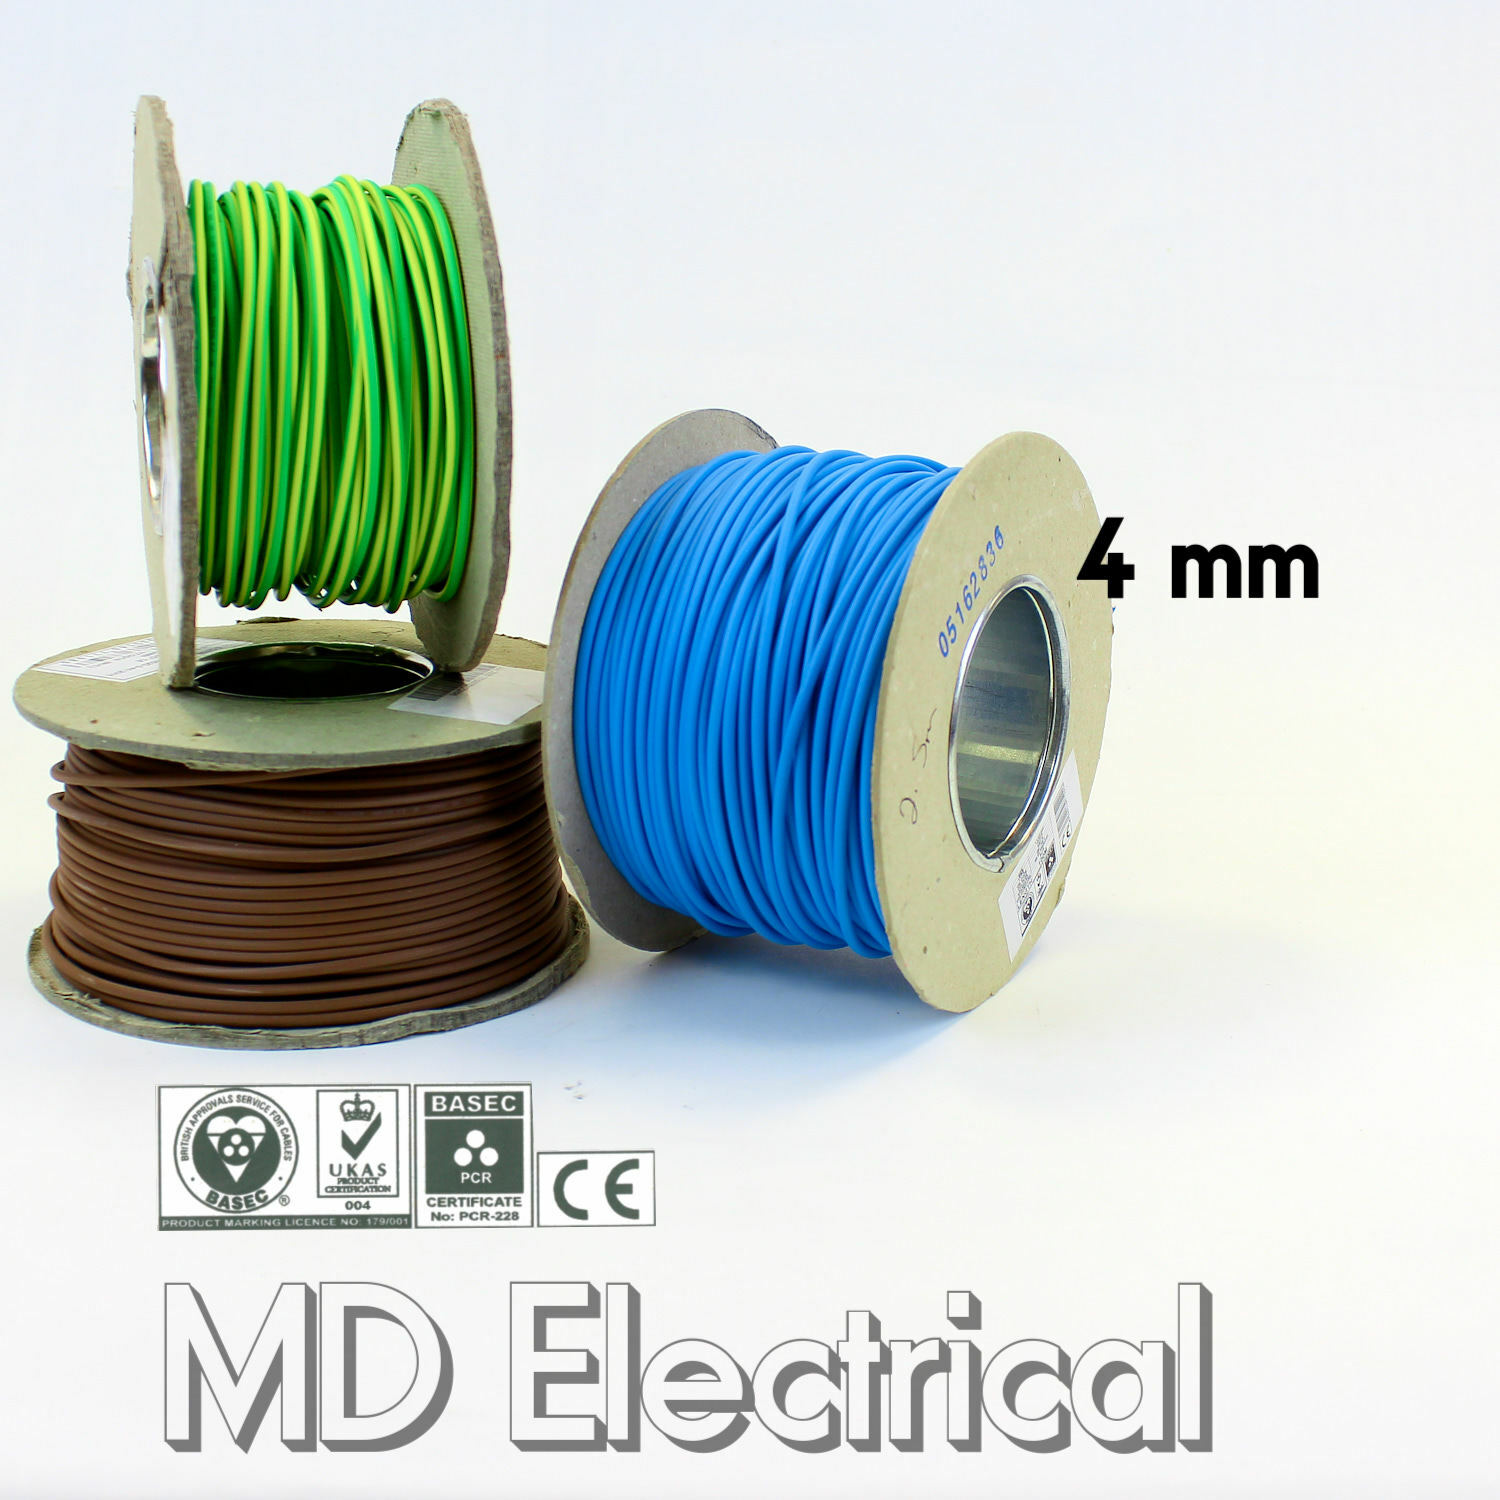 4 mm Single Core Conduit Cable 6491X bluee Brown Earth Yellow Green Bonding Wire